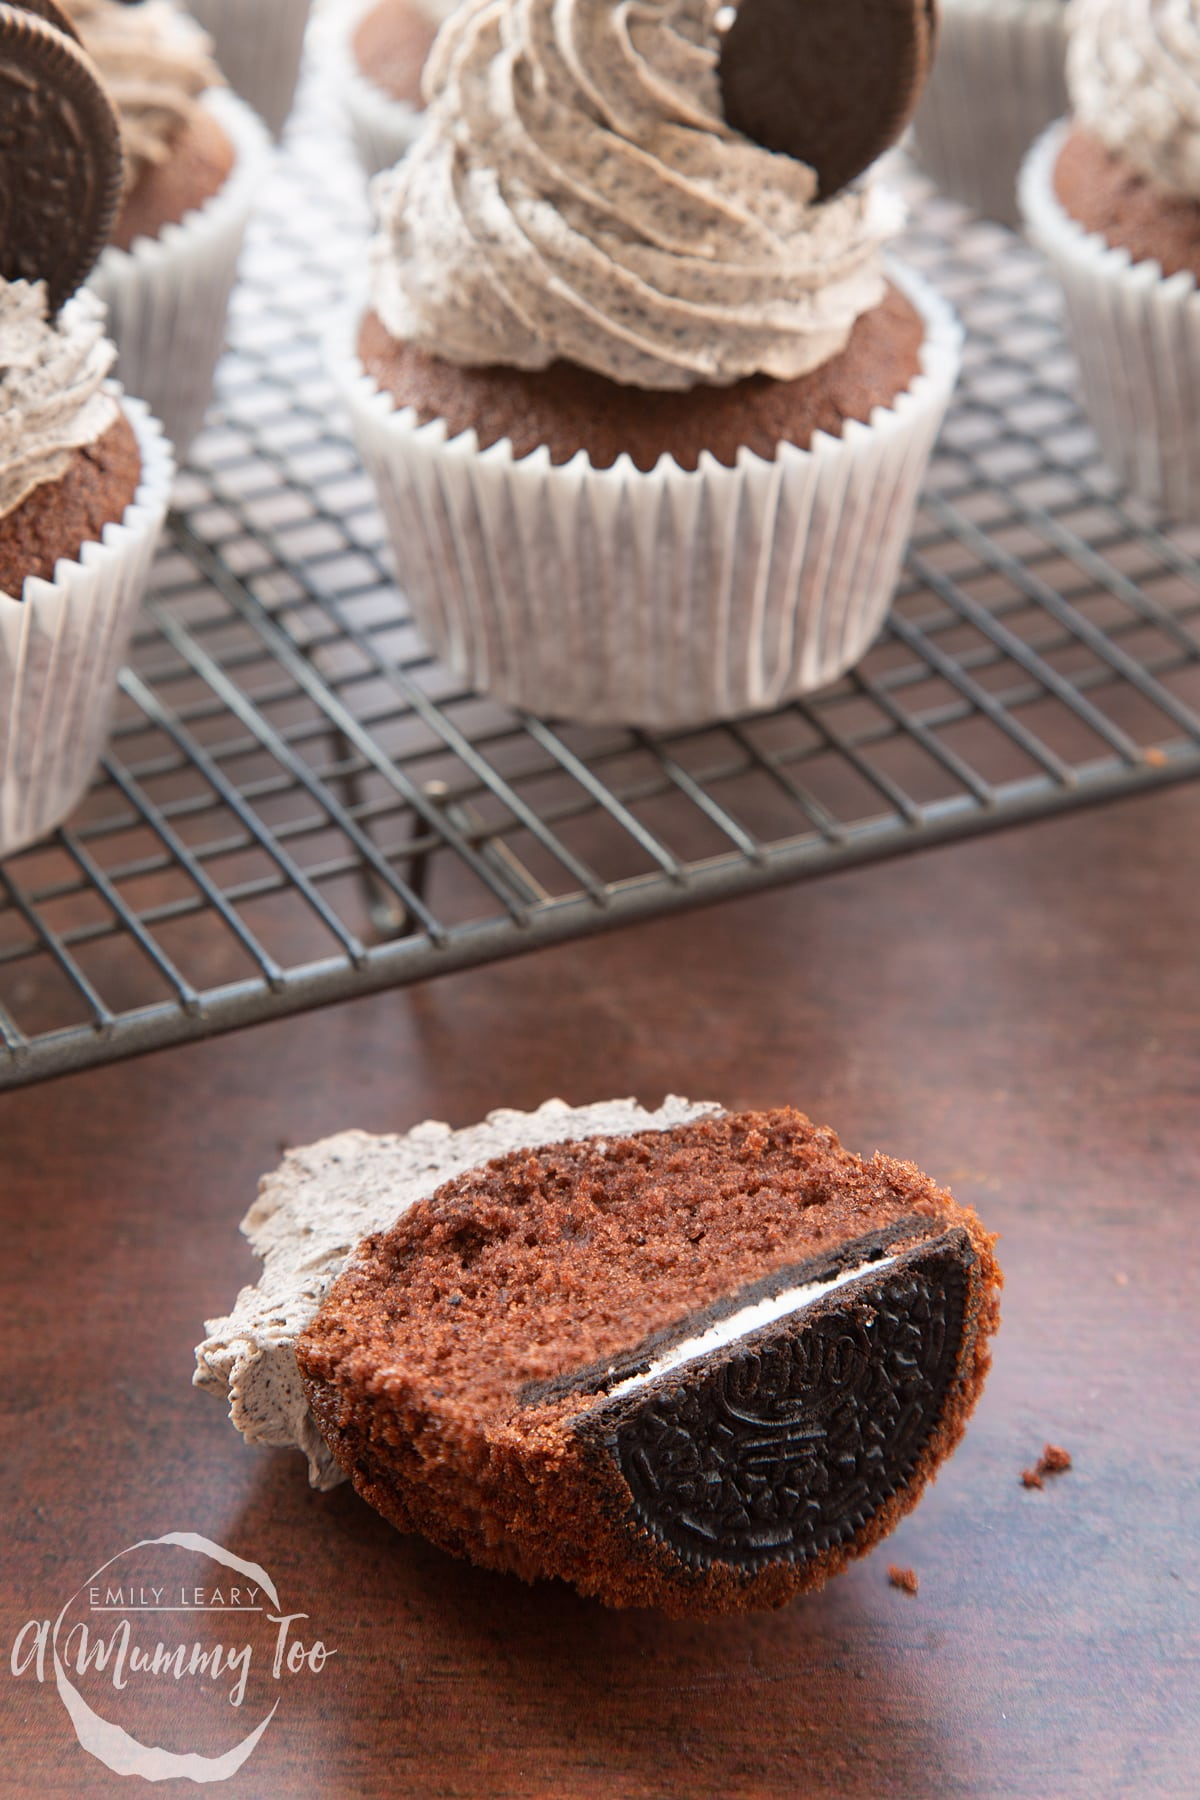 Front view shot of half a chocolate cupcake with oreo buttercream